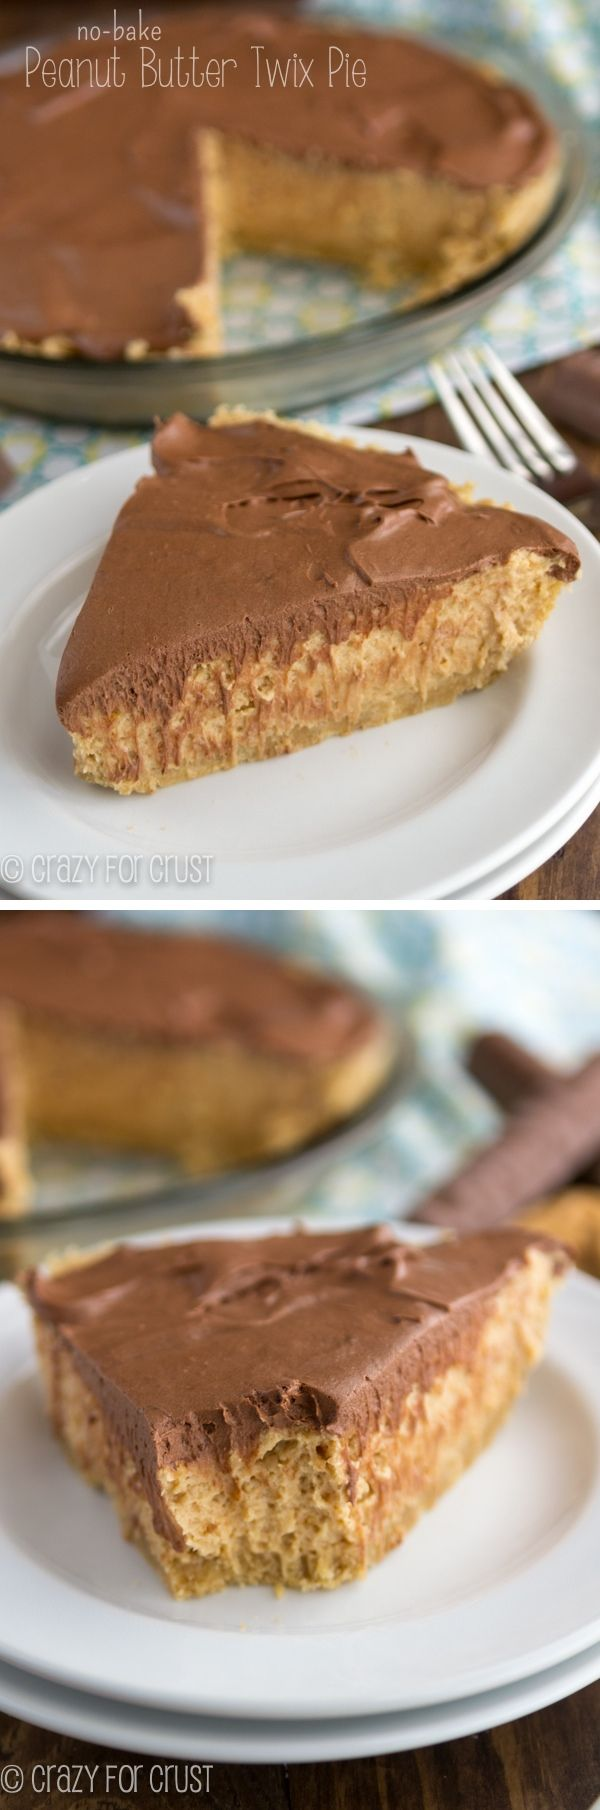 No-Bake Peanut Butter Twix Pie has layers of peanut butter and chocolate with a shortbread cookie crust! #delicious #recipe #cake #desserts #dessertrecipes #yummy #delicious #food #sweet